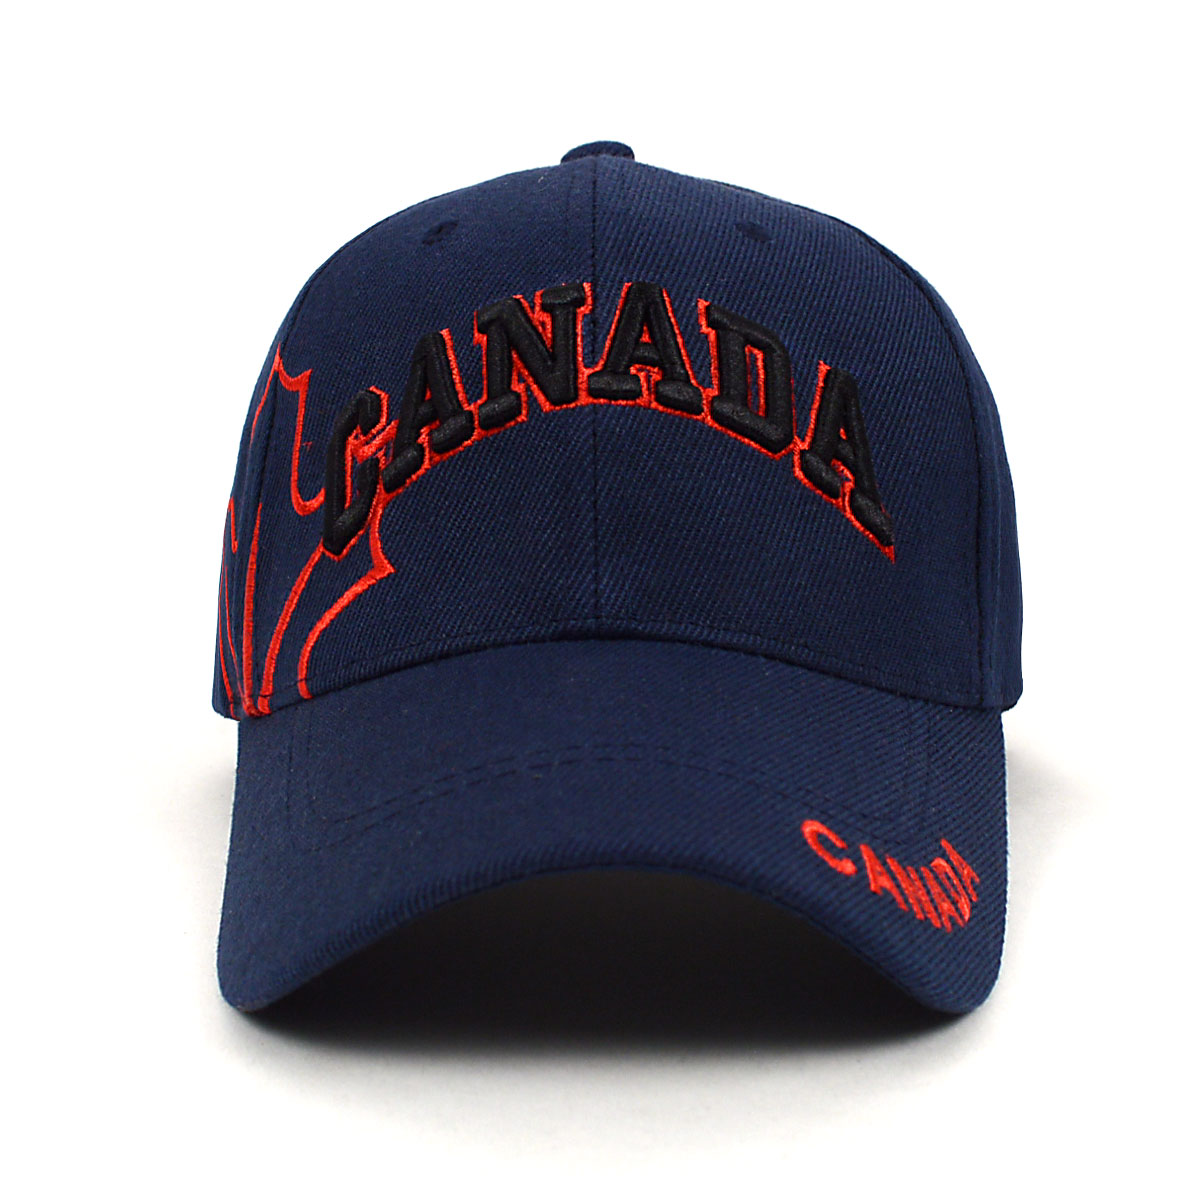 Canada Navy 3D Embroidered Baseball Cap 6f2b6205384